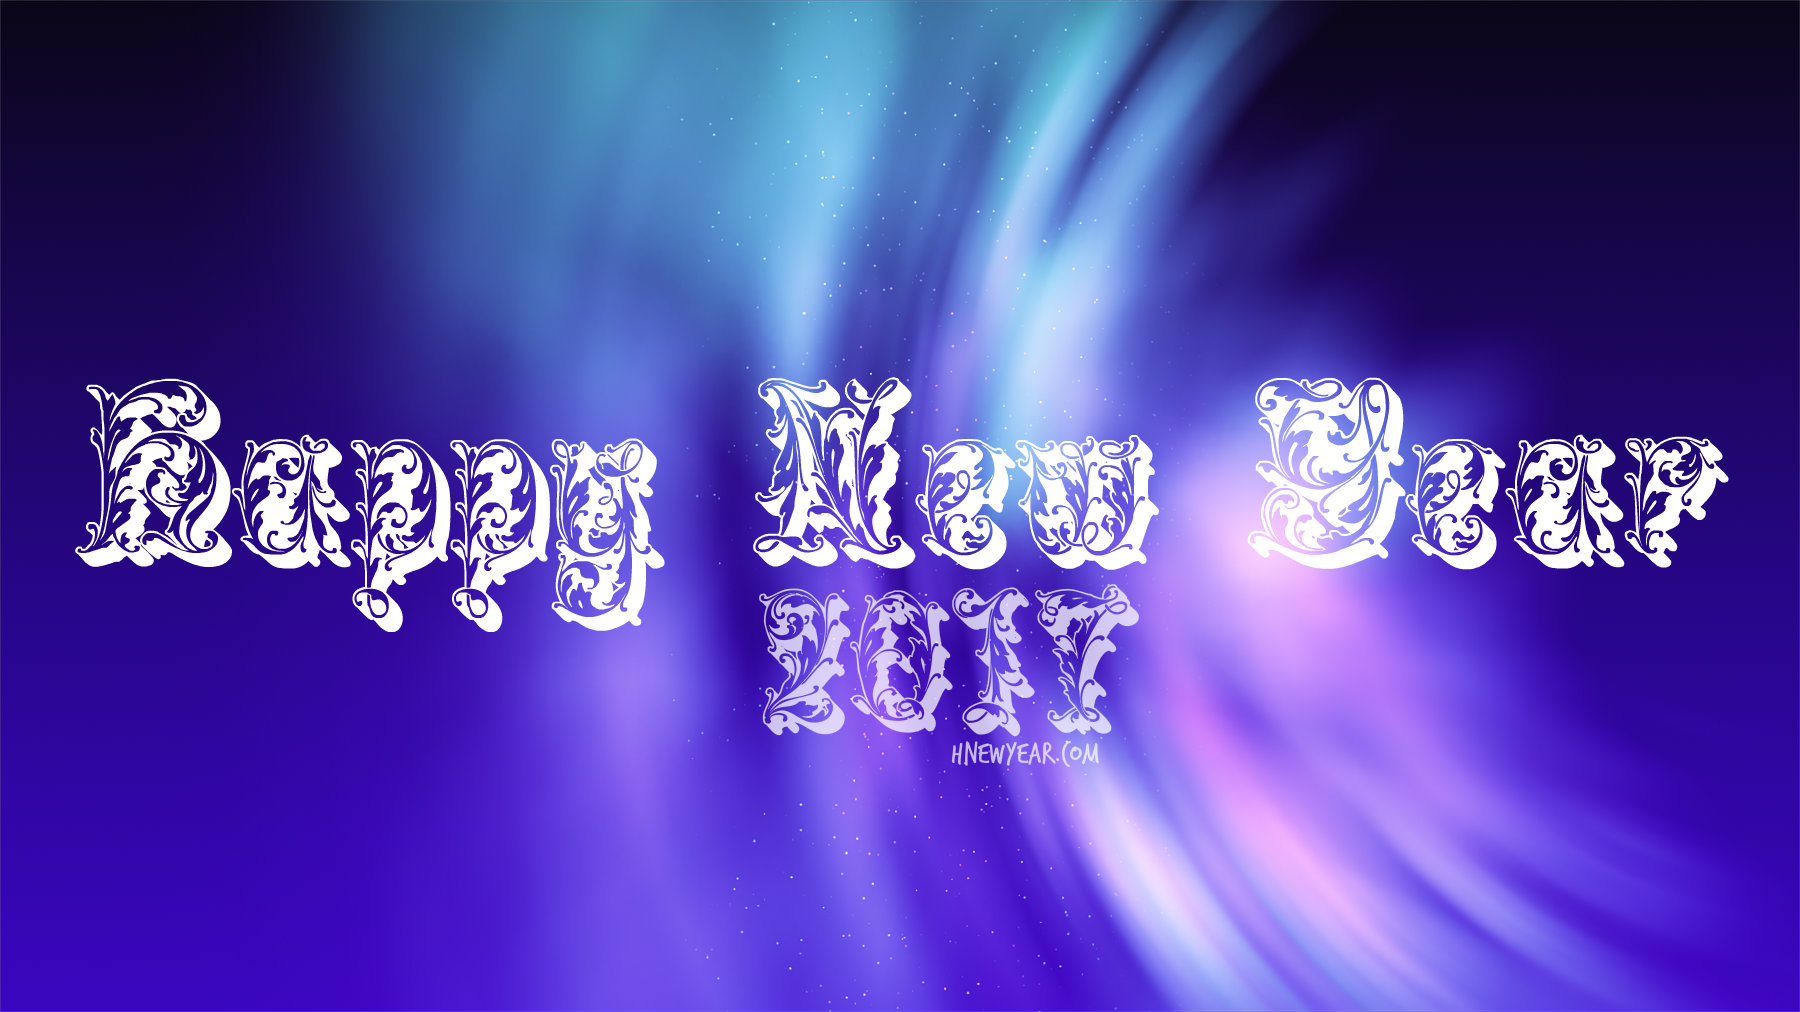 Advance Happy New Year 2017 Wishes Images HD Wallpapers 1800x1012